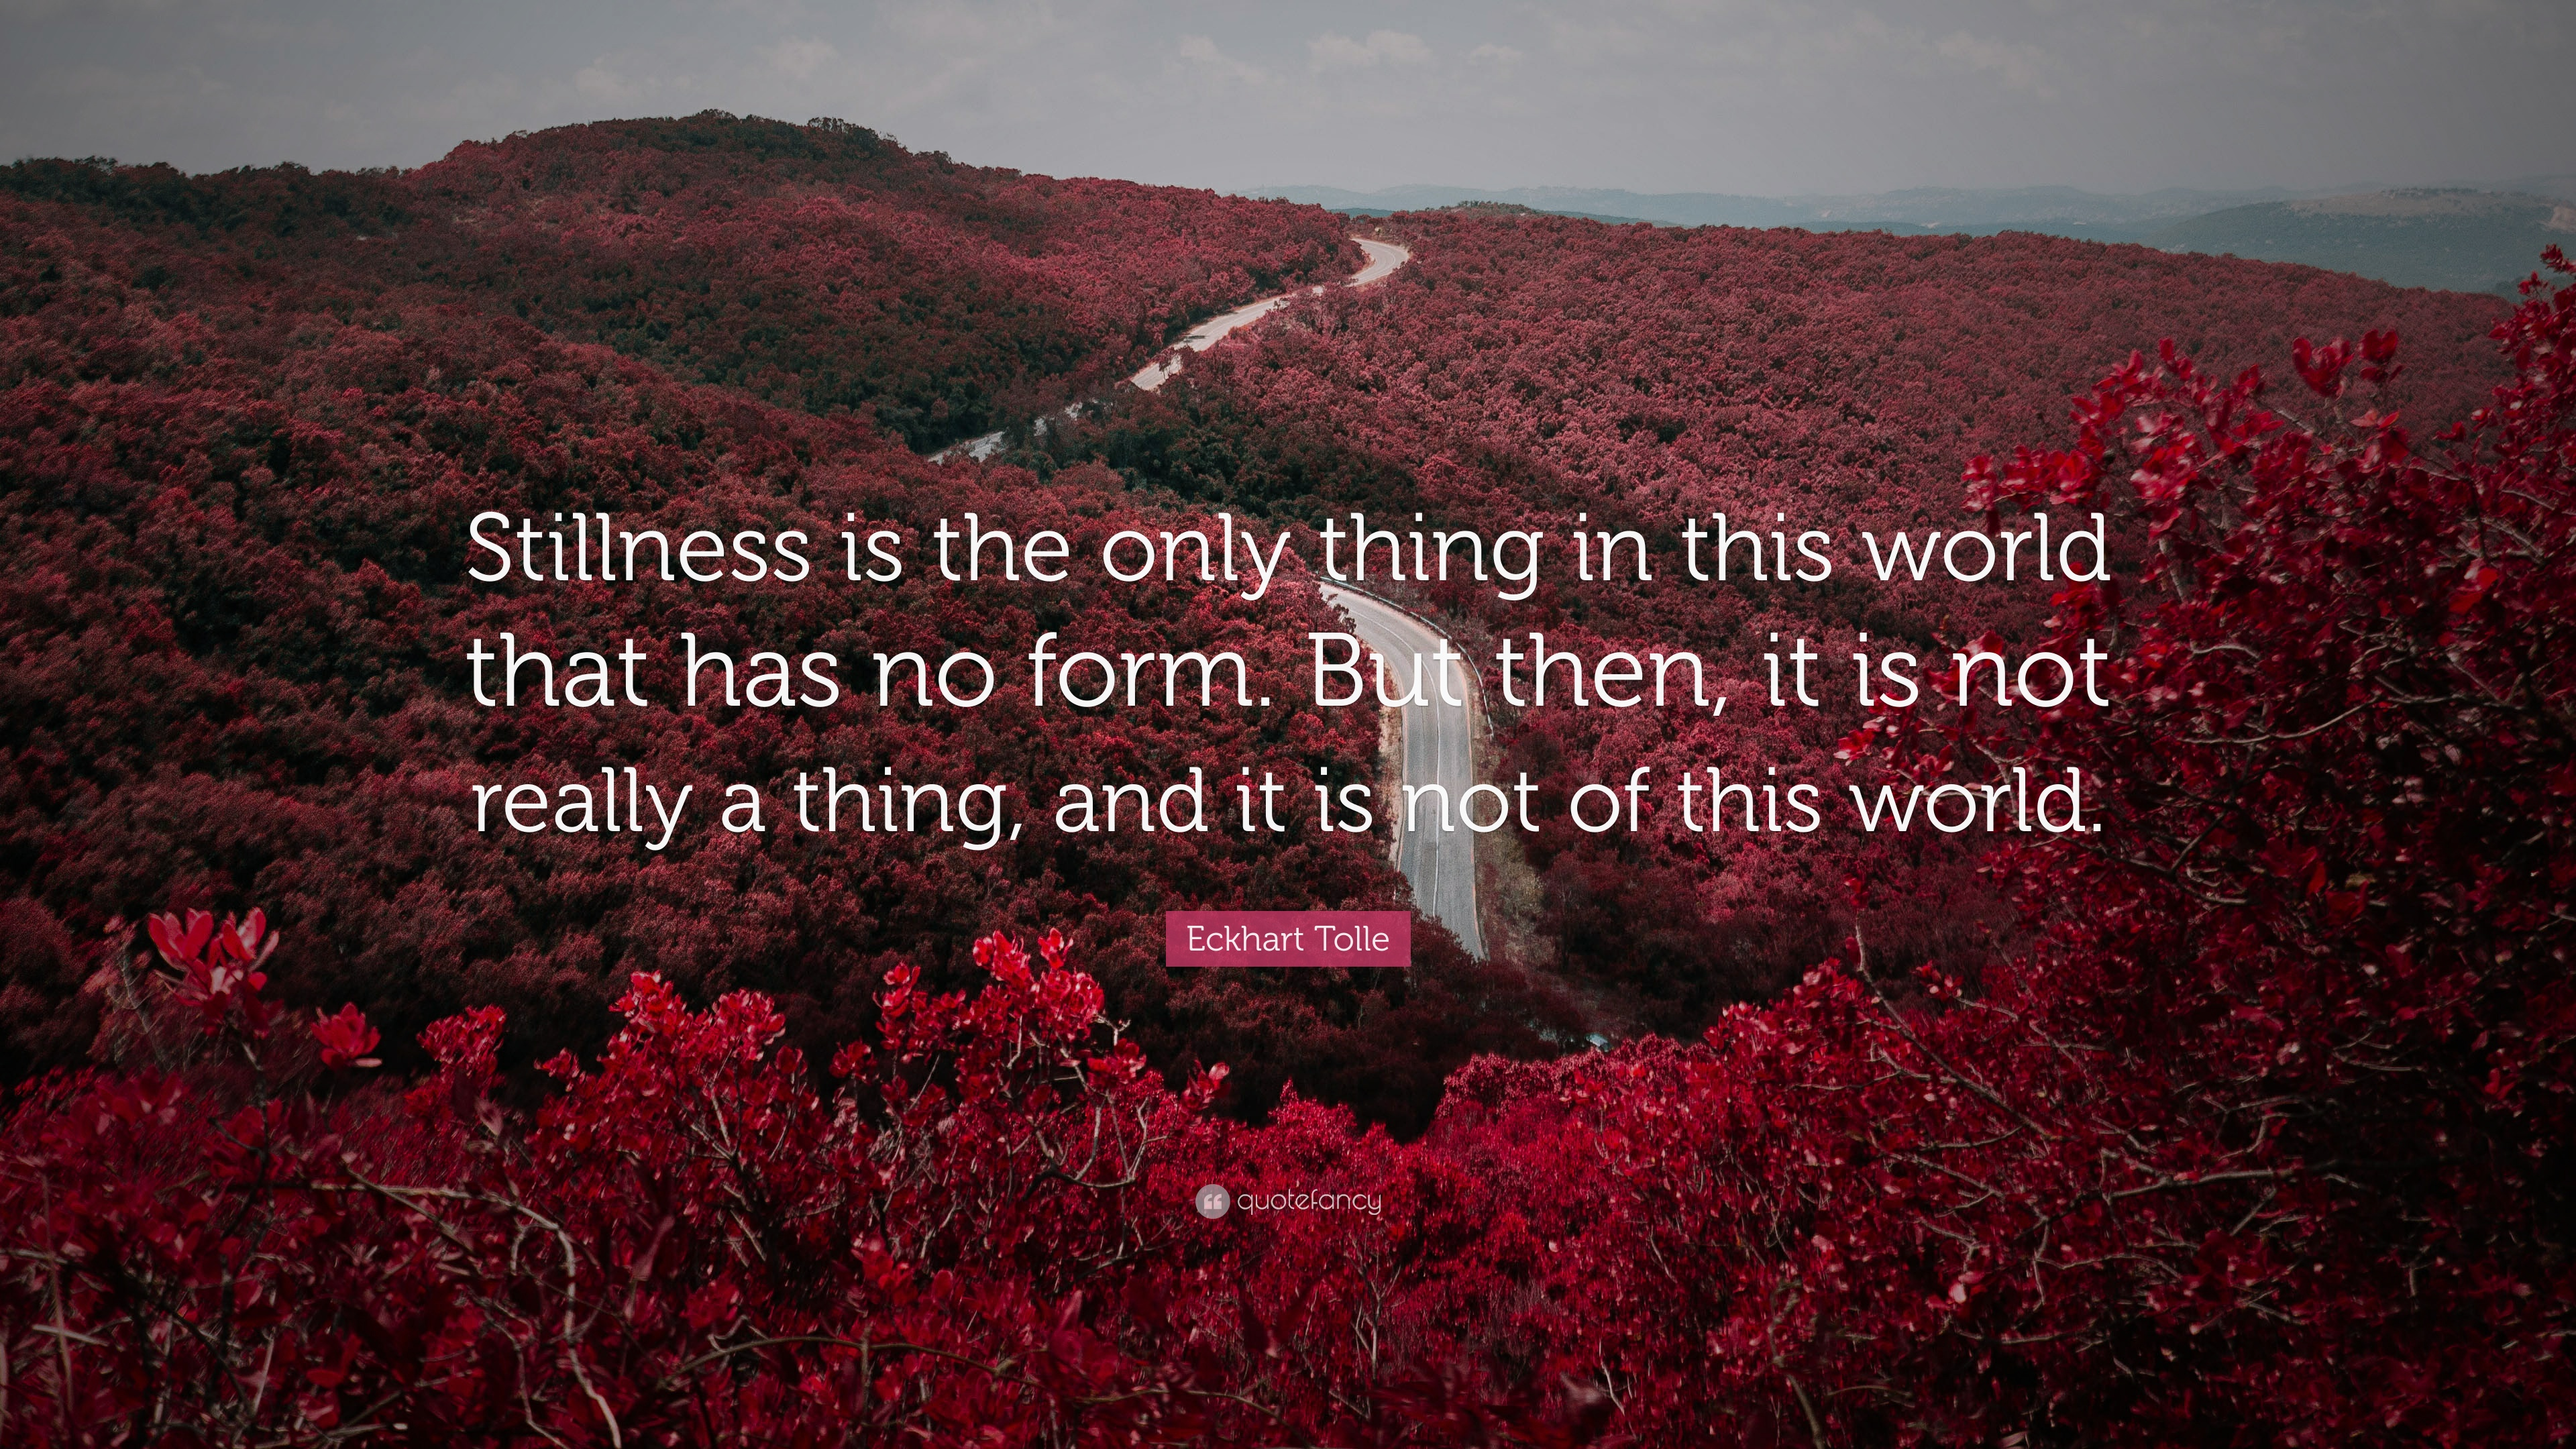 140944-Eckhart-Tolle-Quote-Stillness-is-the-only-thing-in-this-world-that